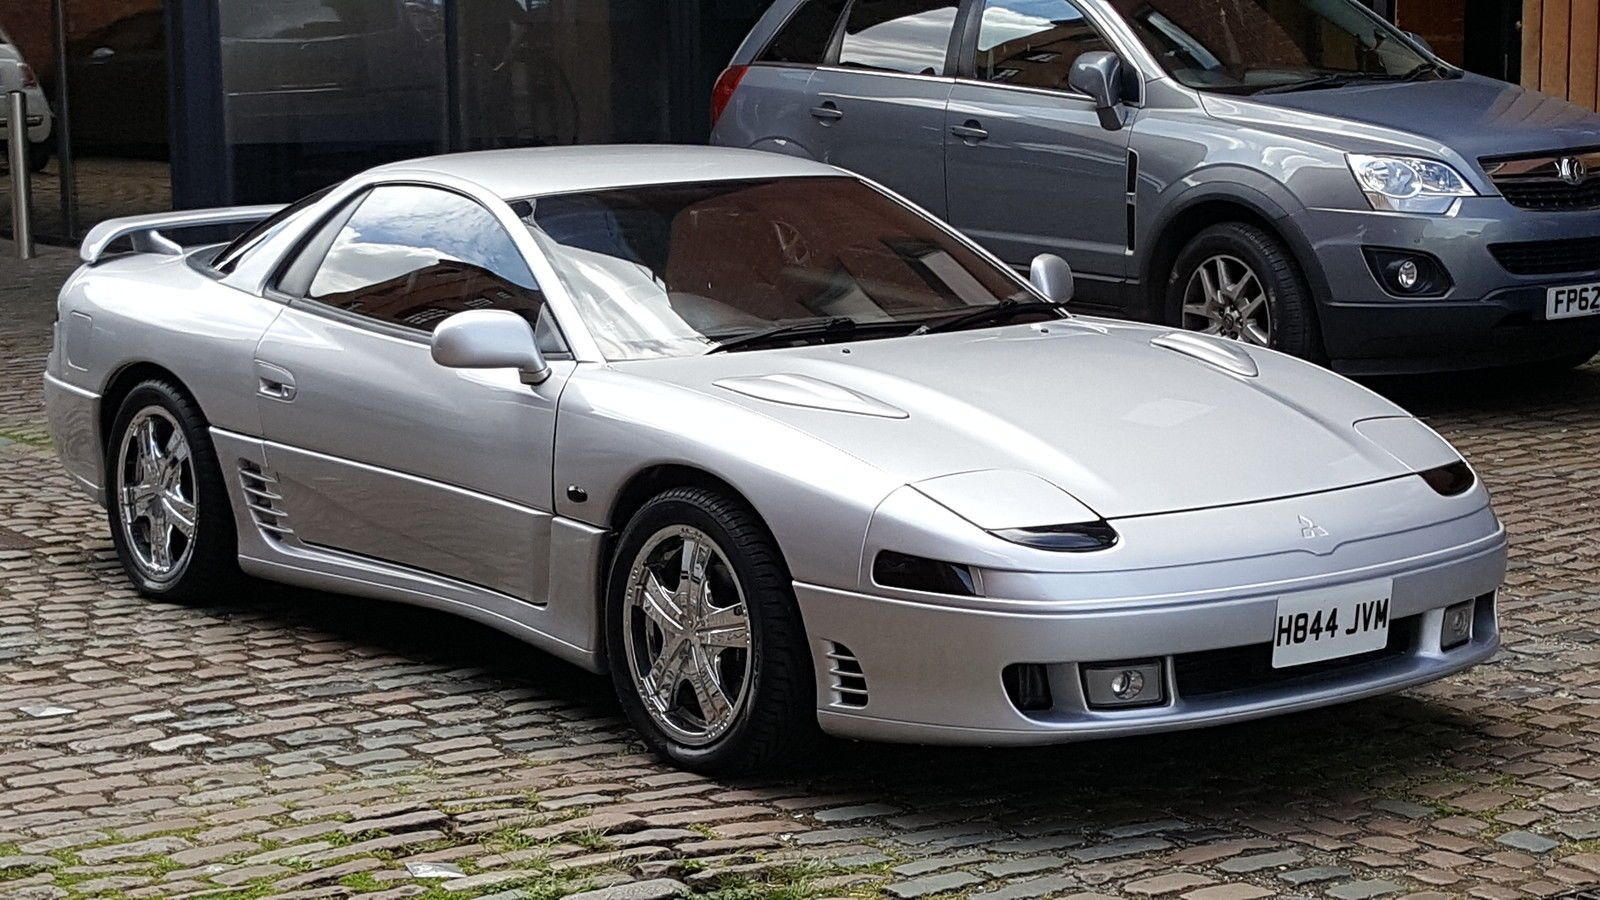 This Mitsubishi Gto 3000gt None Turbo Automatic Is For